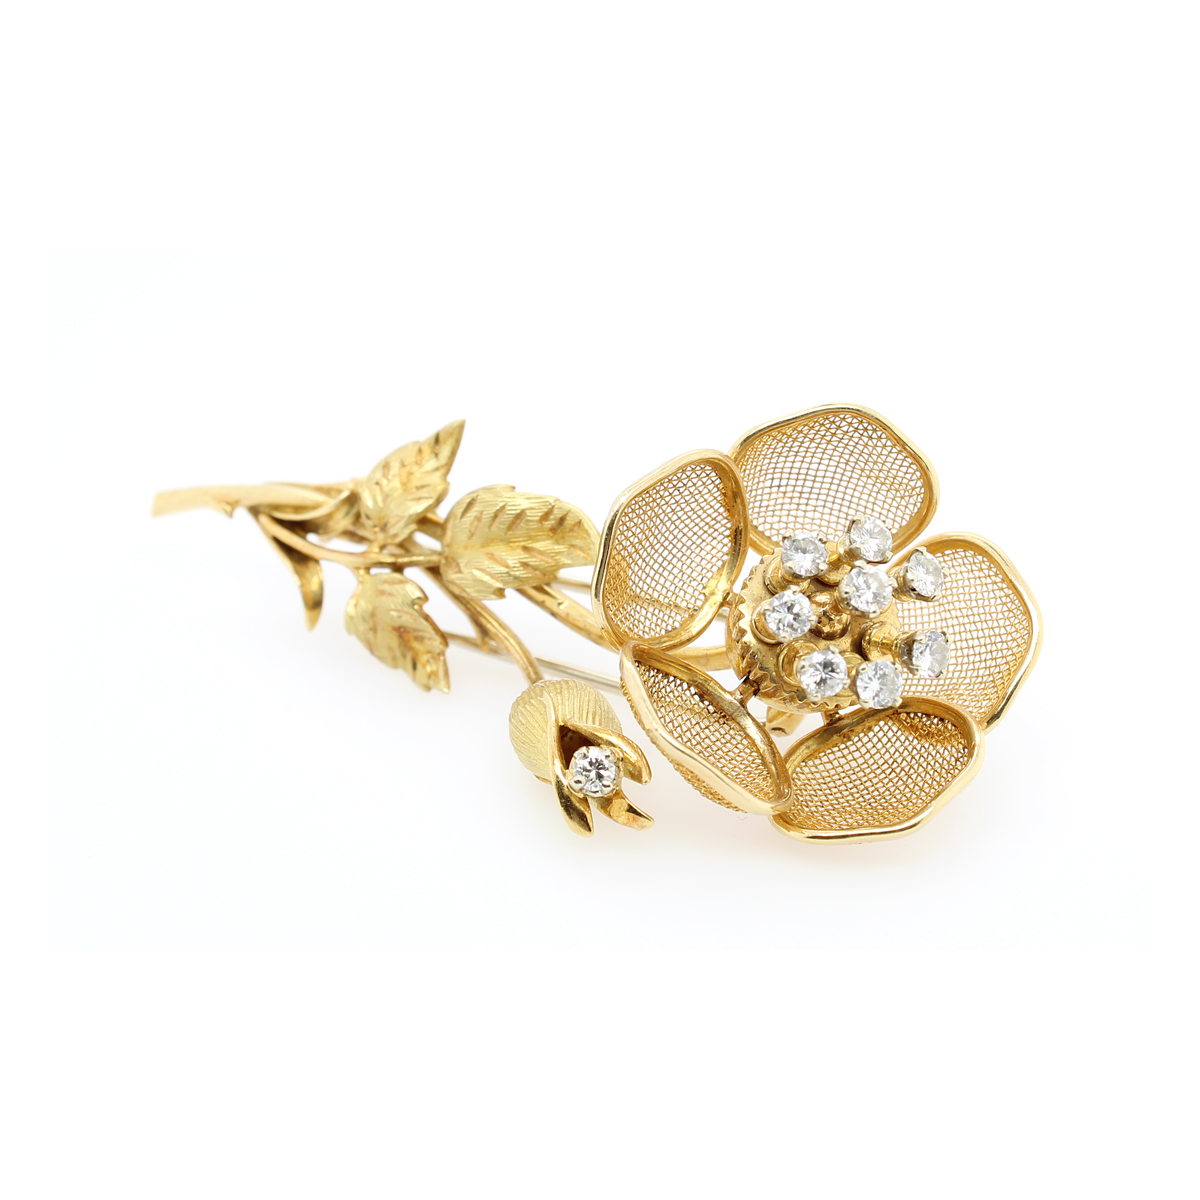 Vintage 18 Karat Yellow Gold French Floral Diamond Pin